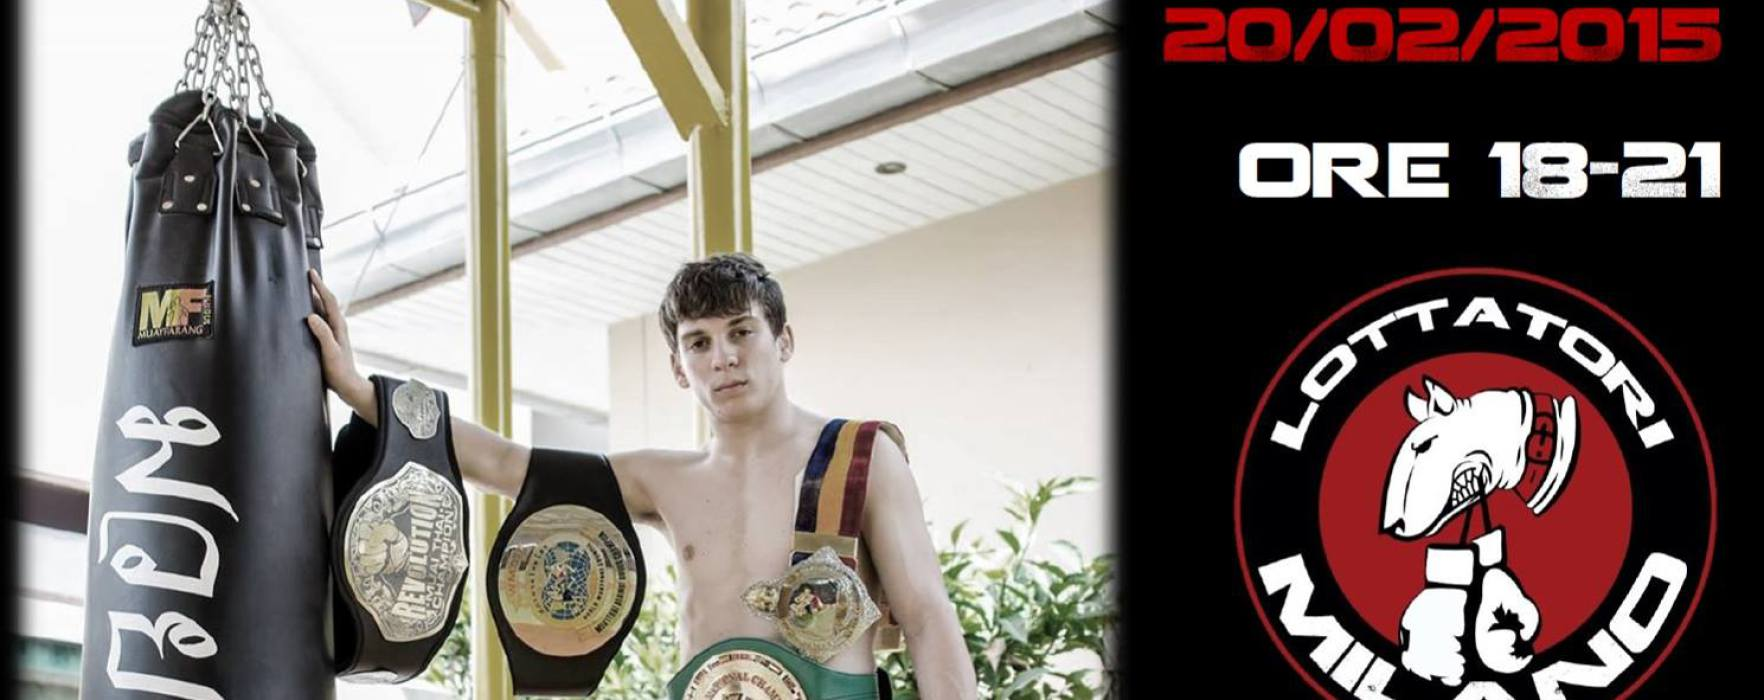 Mathias visits one of the Muay Thai temples of Milan